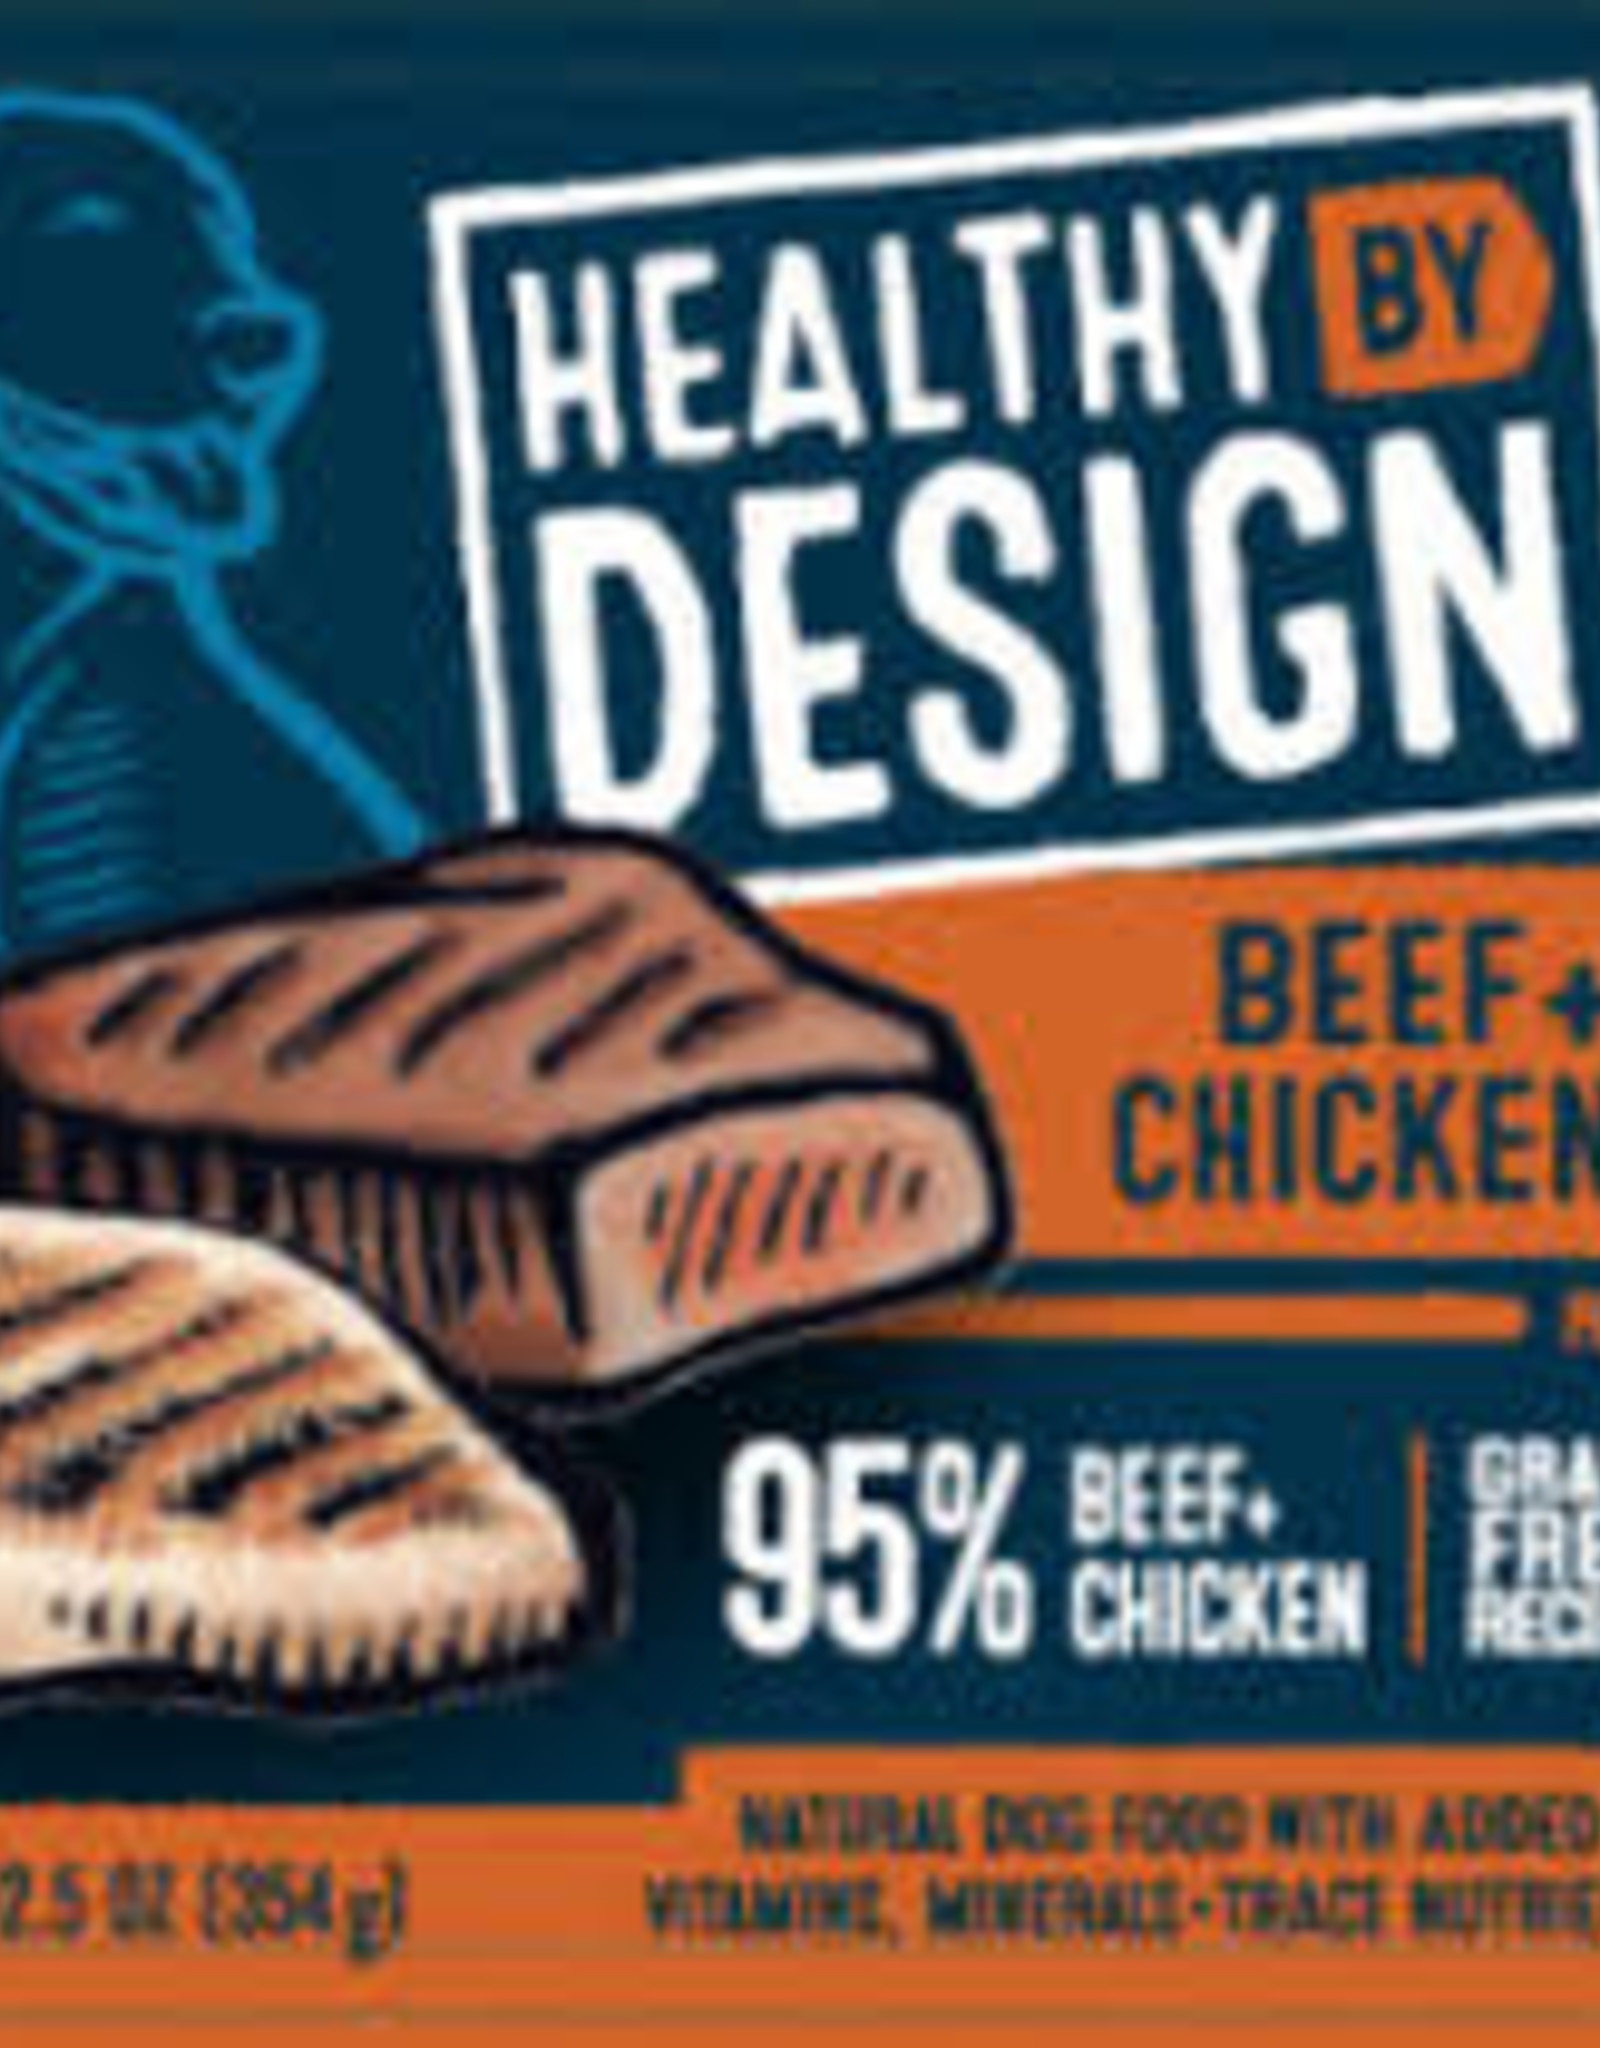 Healthy By Design Healthy By Design Beef & Chicken Pate 12.5 oz